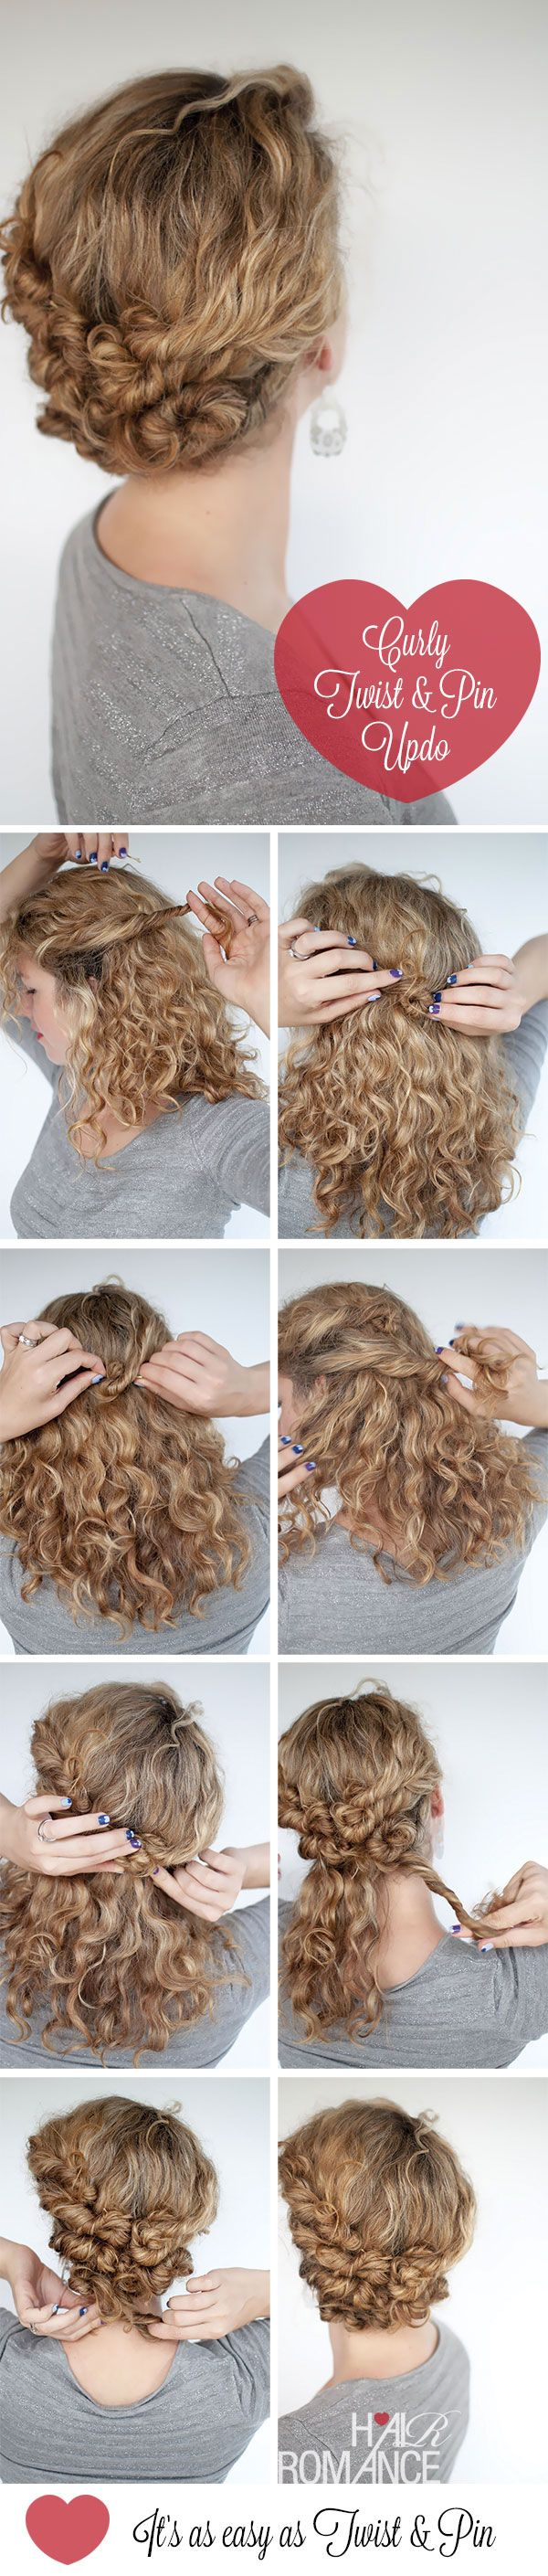 Hairstyle tutorial u easy twist and pin updo for curly hair hair